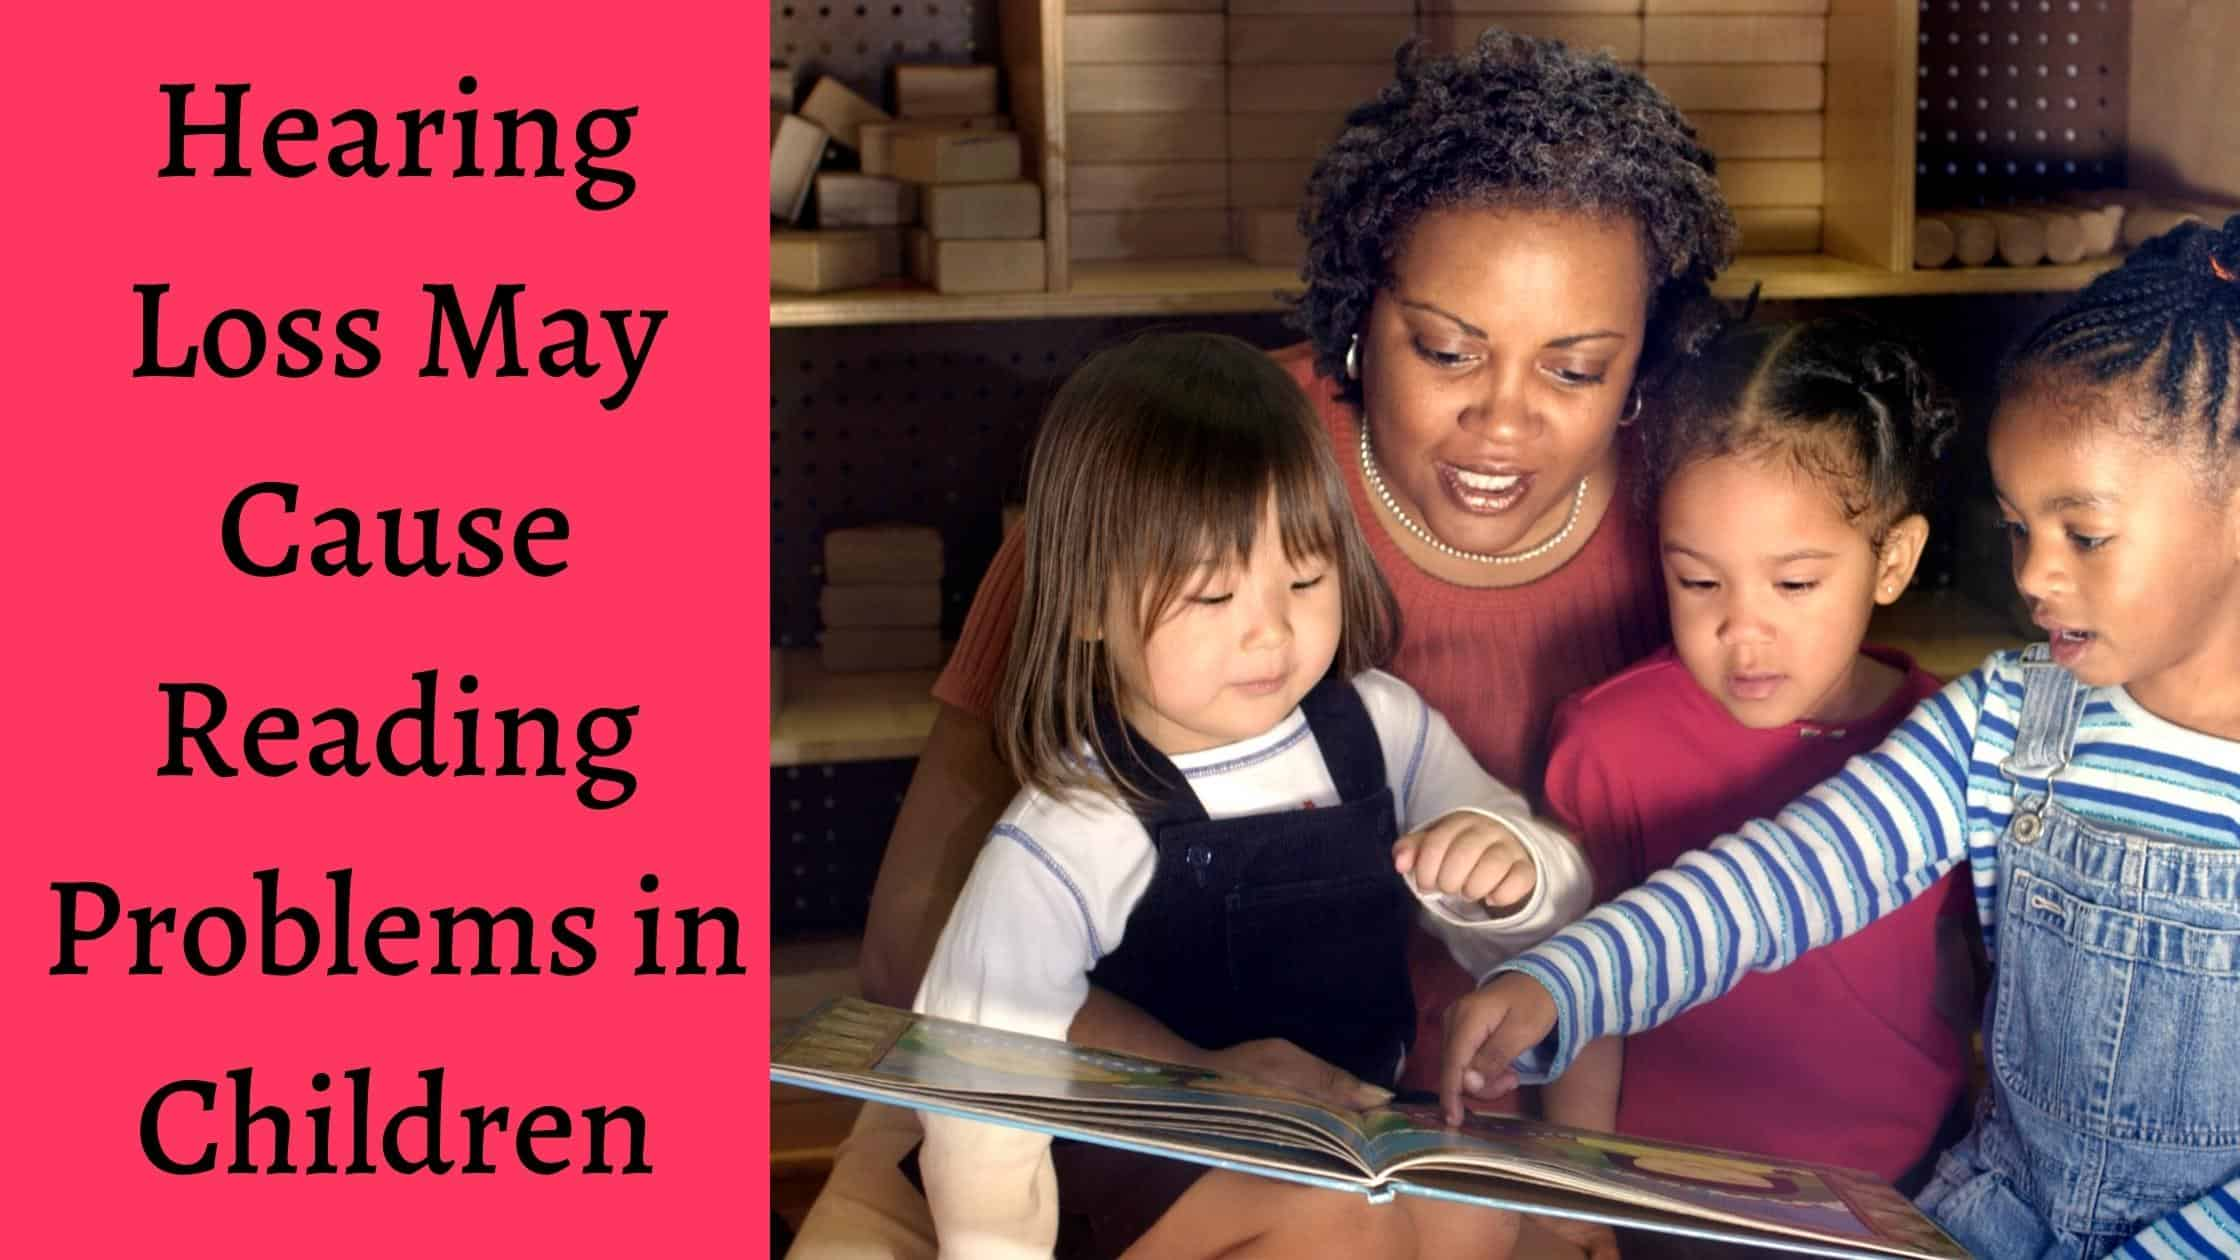 Hearing Loss May Cause Reading Problems in Children